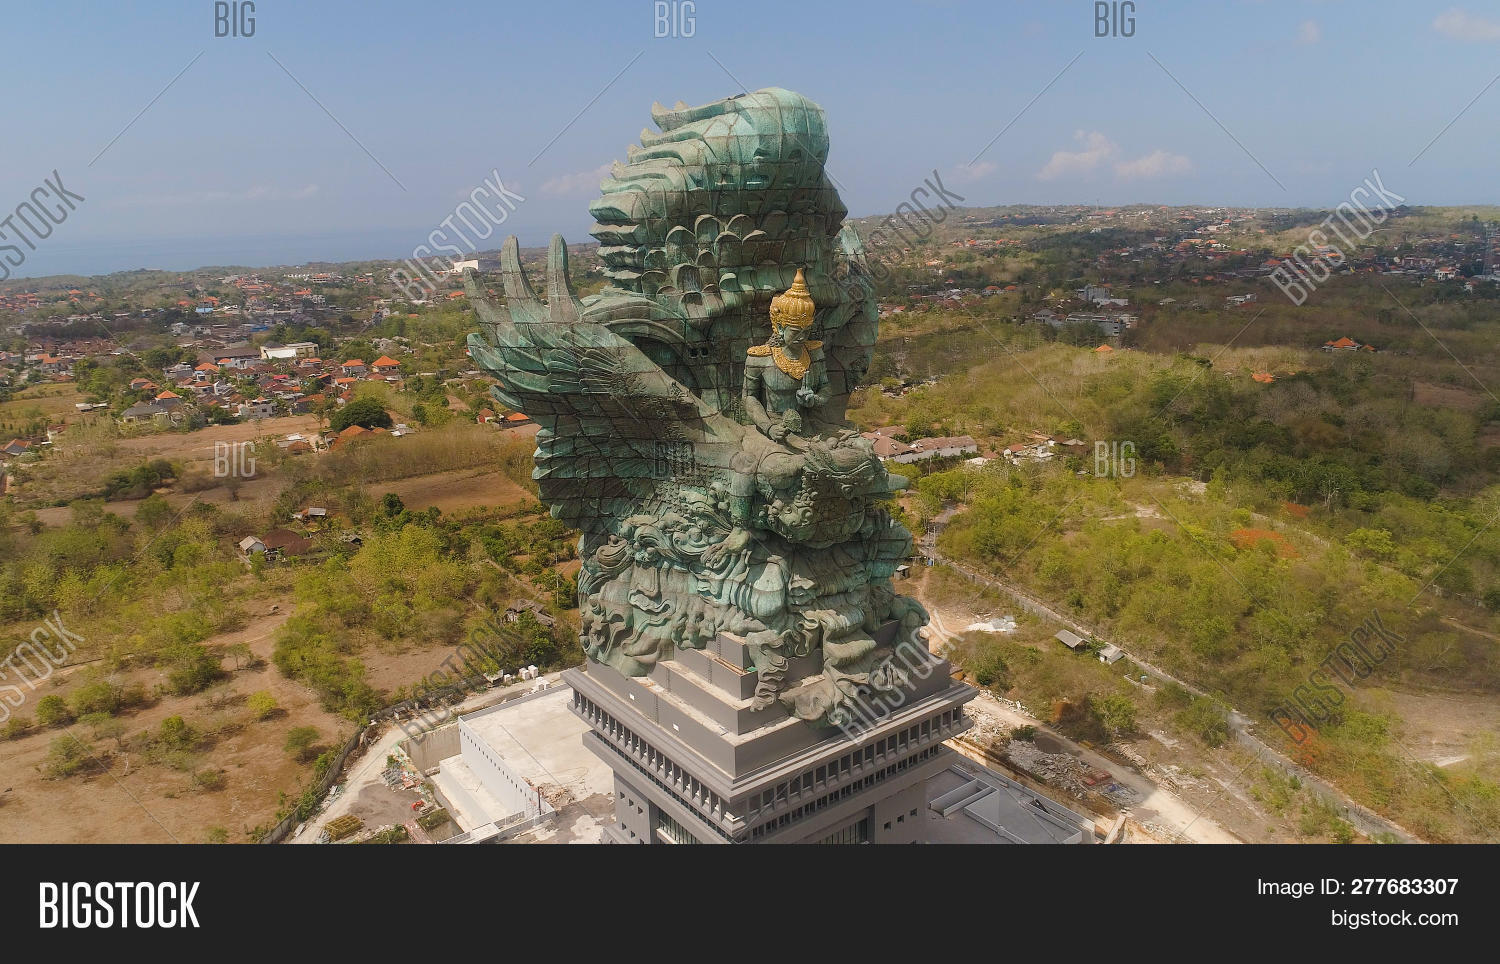 Aerial View Statue Image Photo Free Trial Bigstock